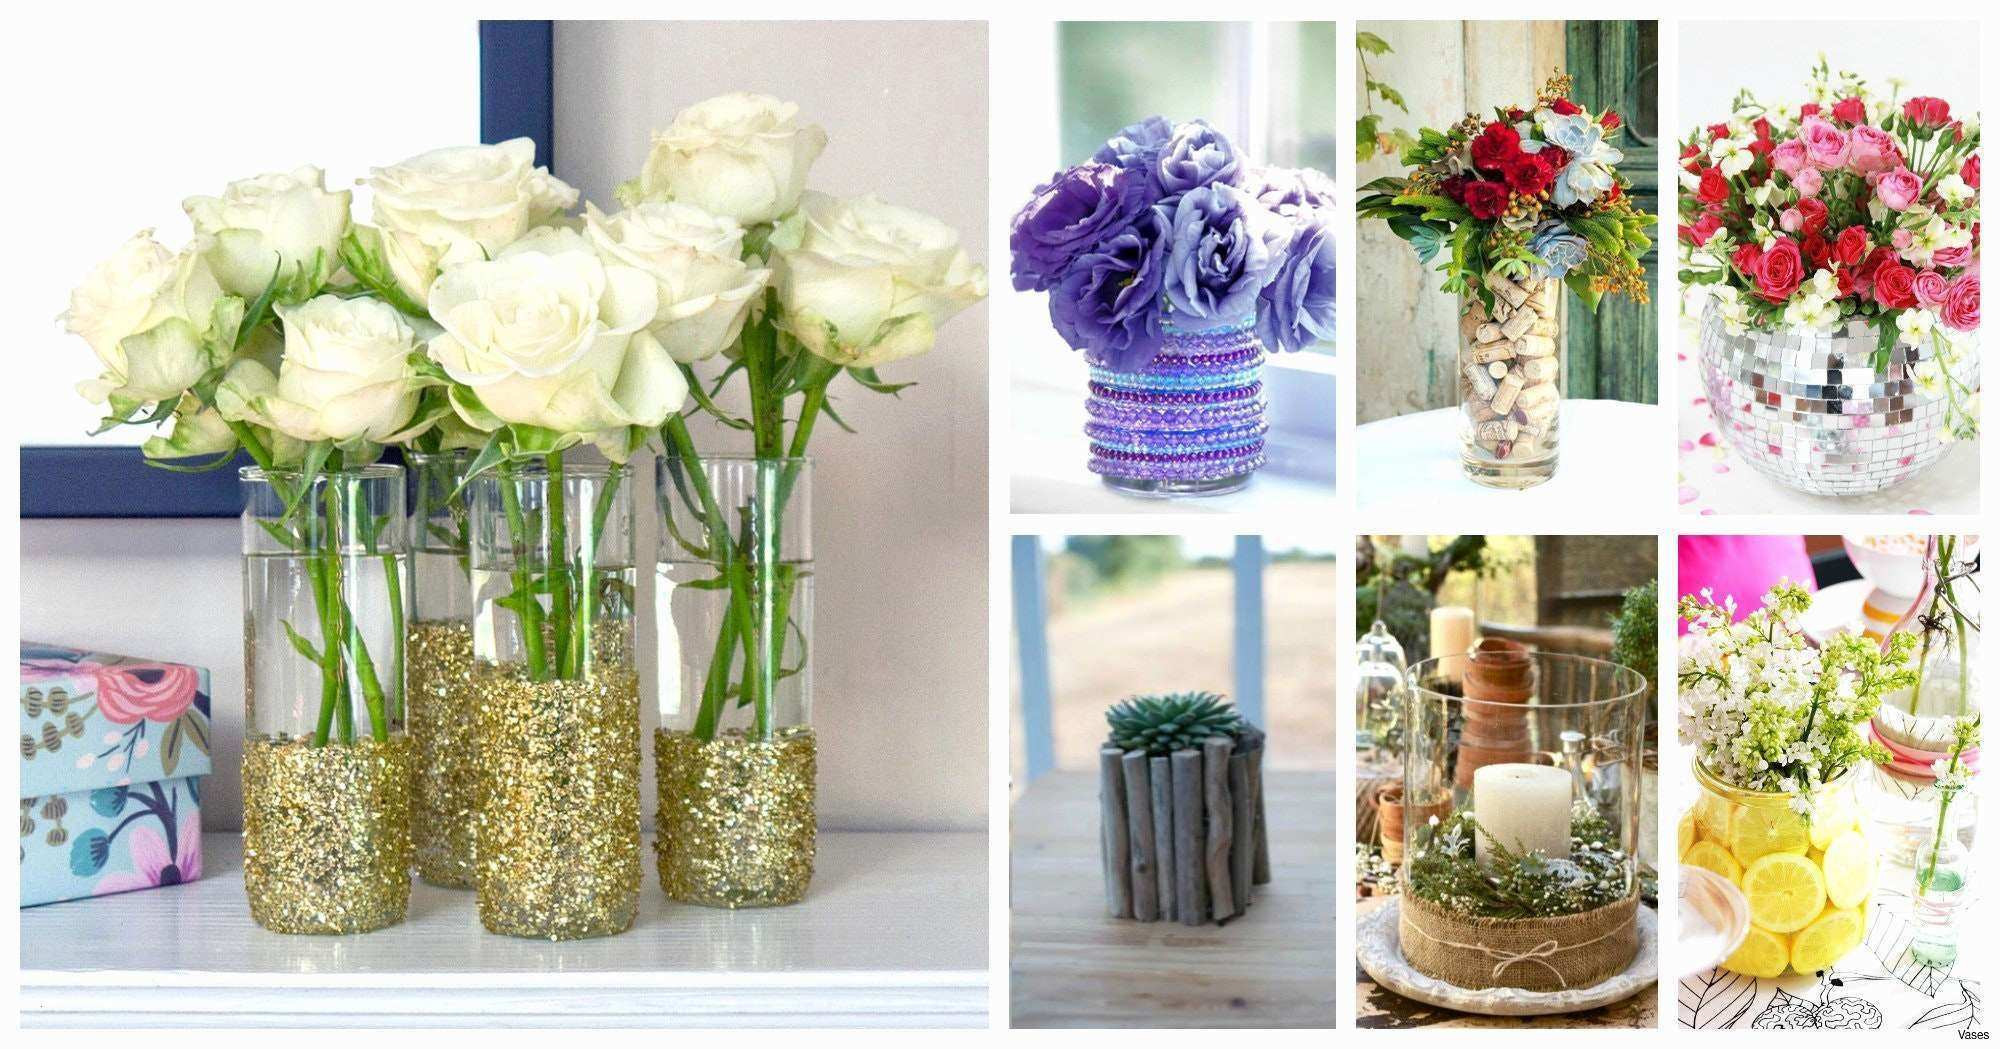 tall vase wedding centerpiece ideas of vintage affordable wedding decorators near me with easy wedding within vintage affordable wedding decorators near me with easy wedding decorations new